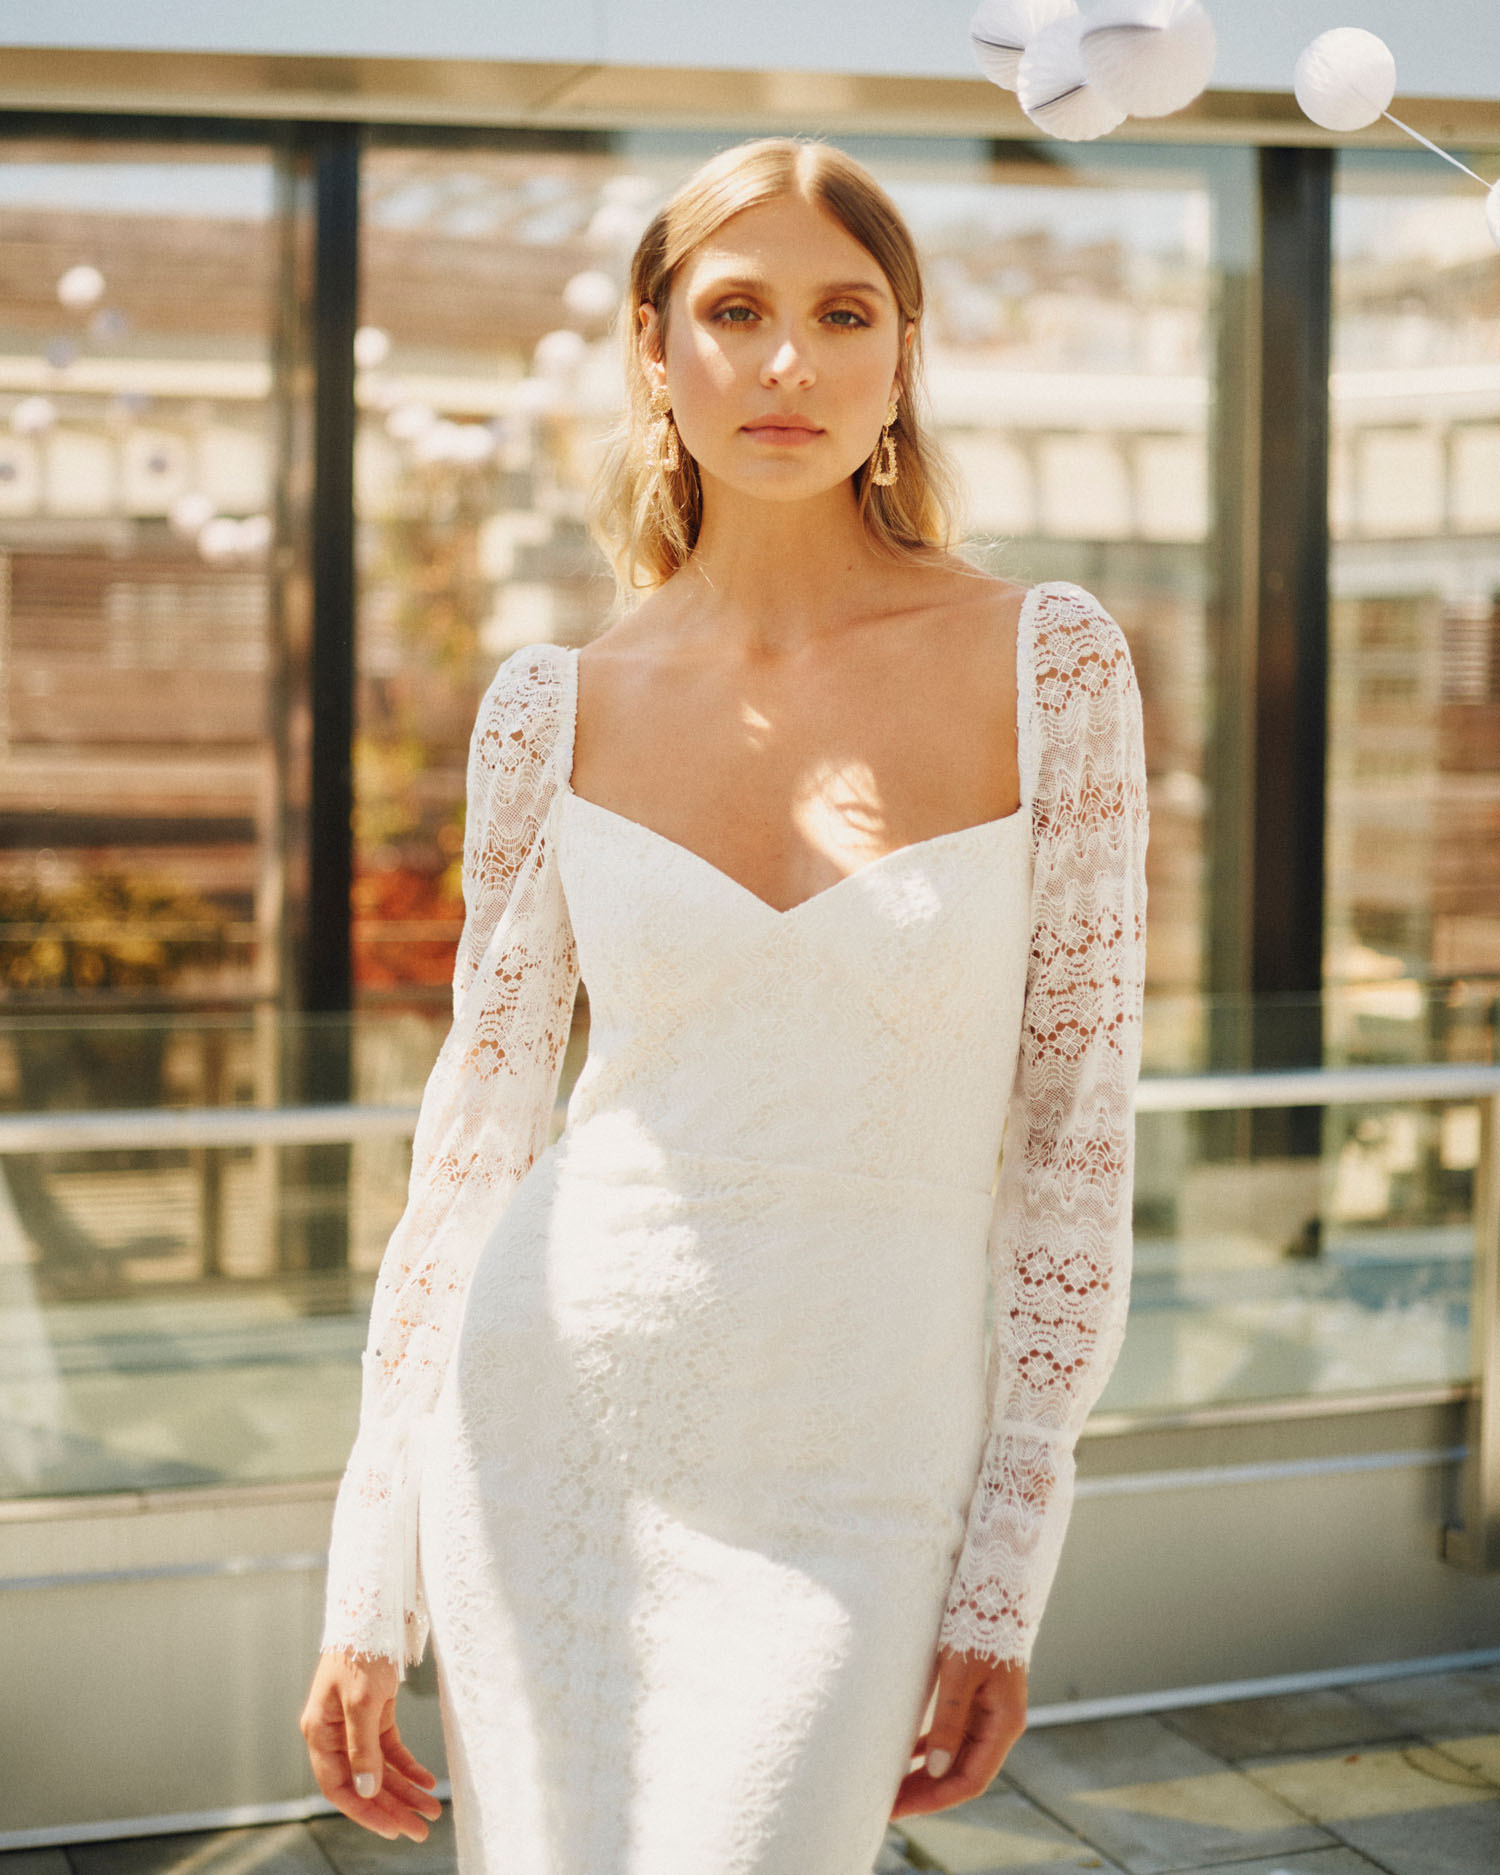 Introducing the Kairos Wedding Dress Collection from LAUDAE